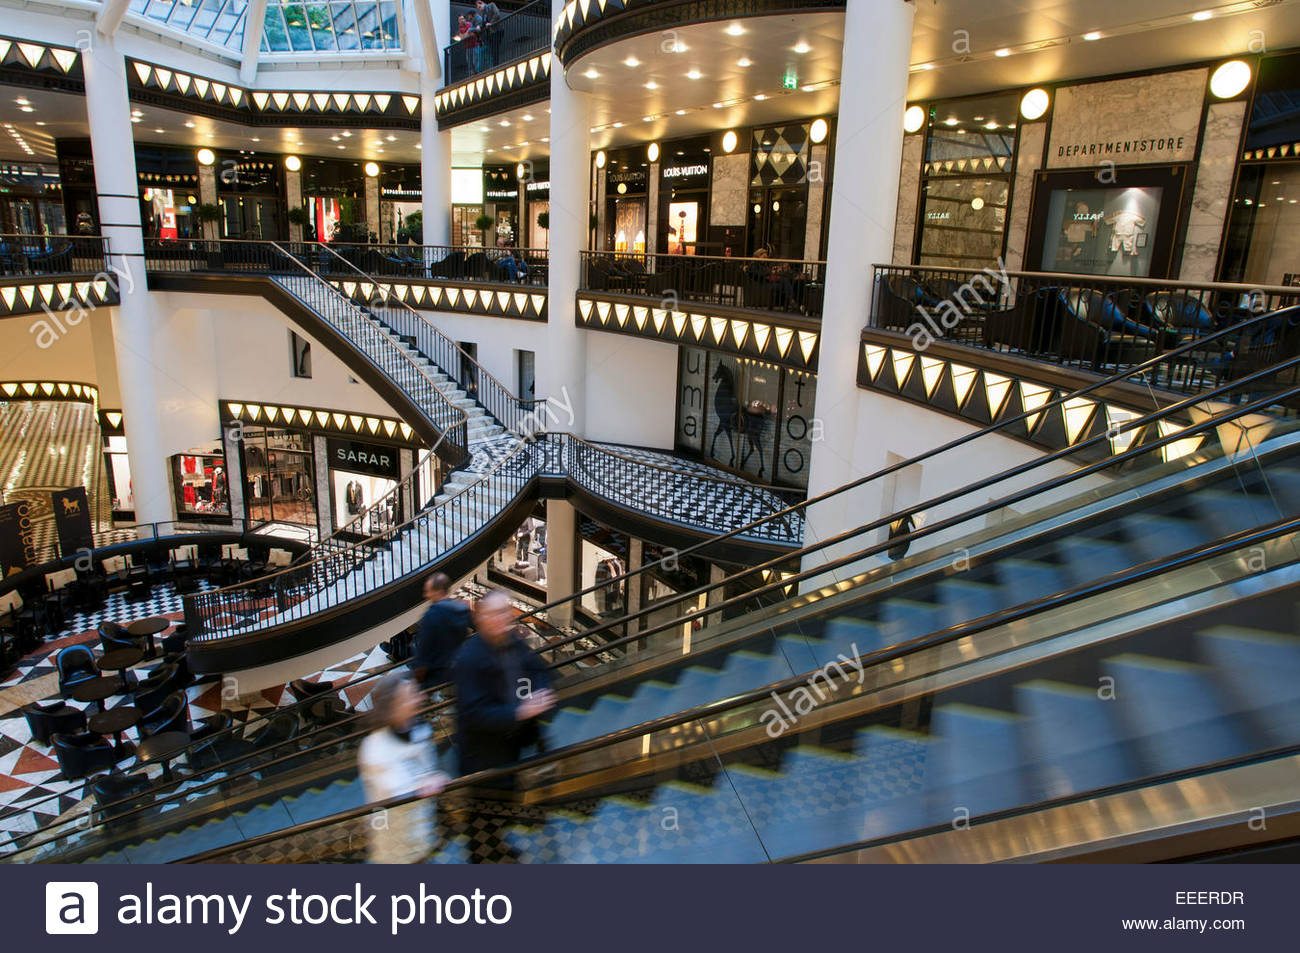 Quartier 205, luxury shopping mall in Berlin. Friedrichstrasse is one of the most legendary streets in the whole - Stock Image